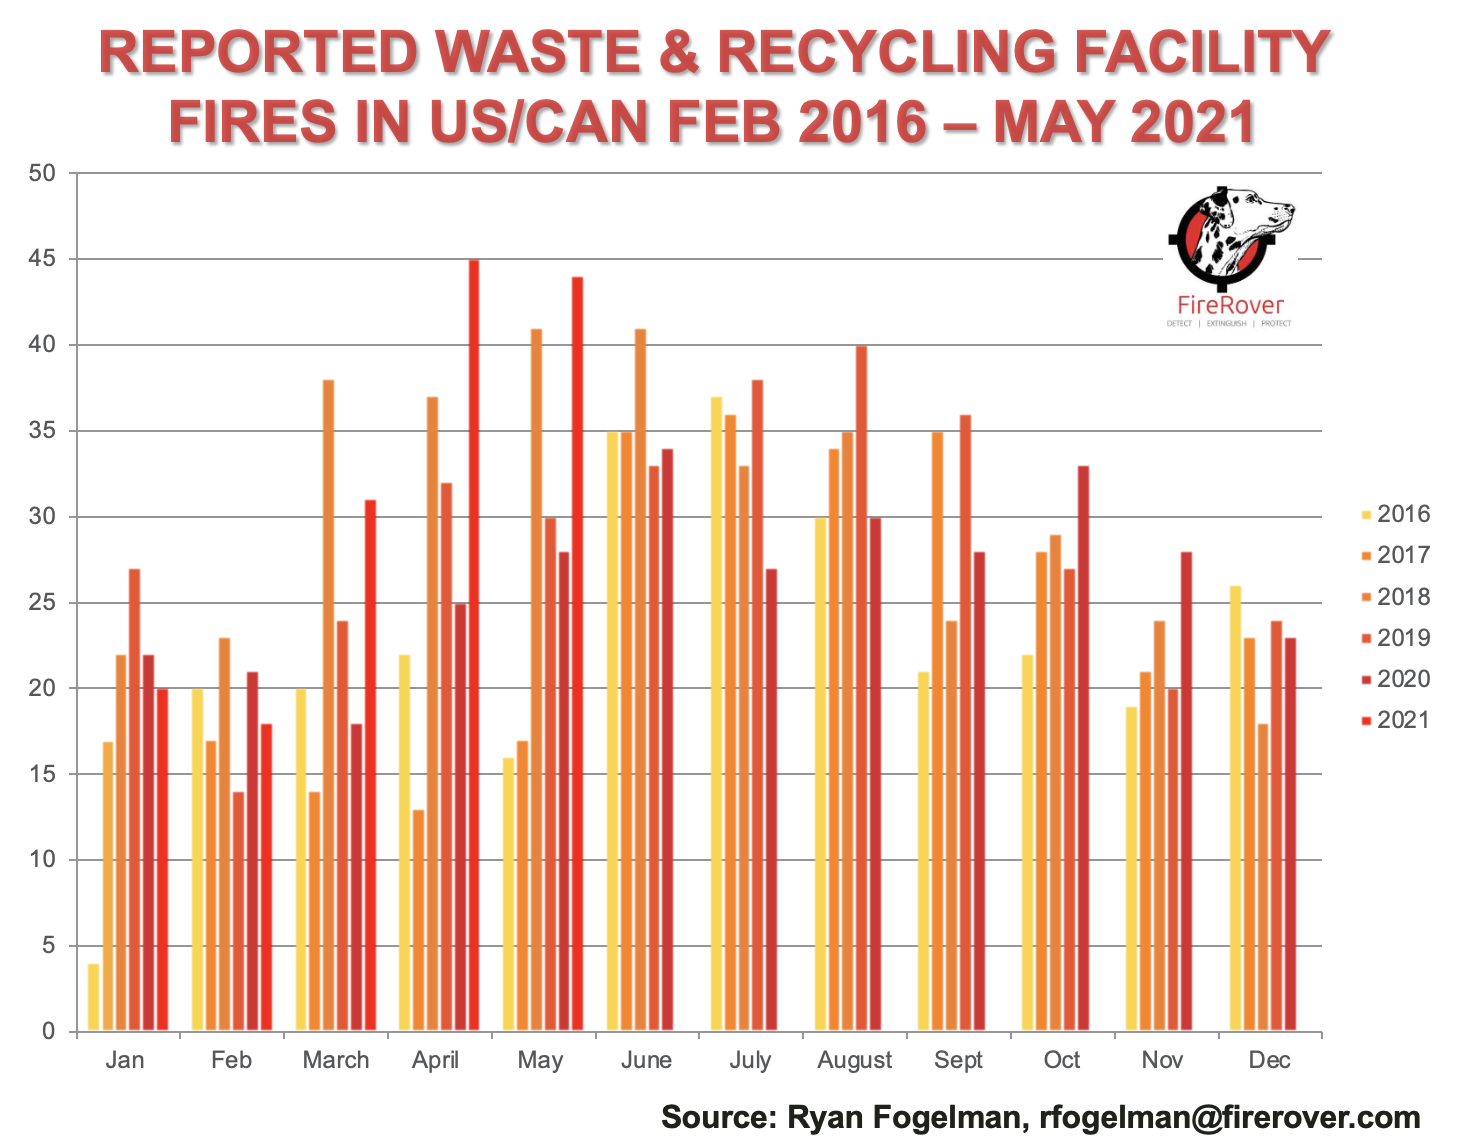 Fires reported at recycling and waste facilities from February 2016 to May 2021.png